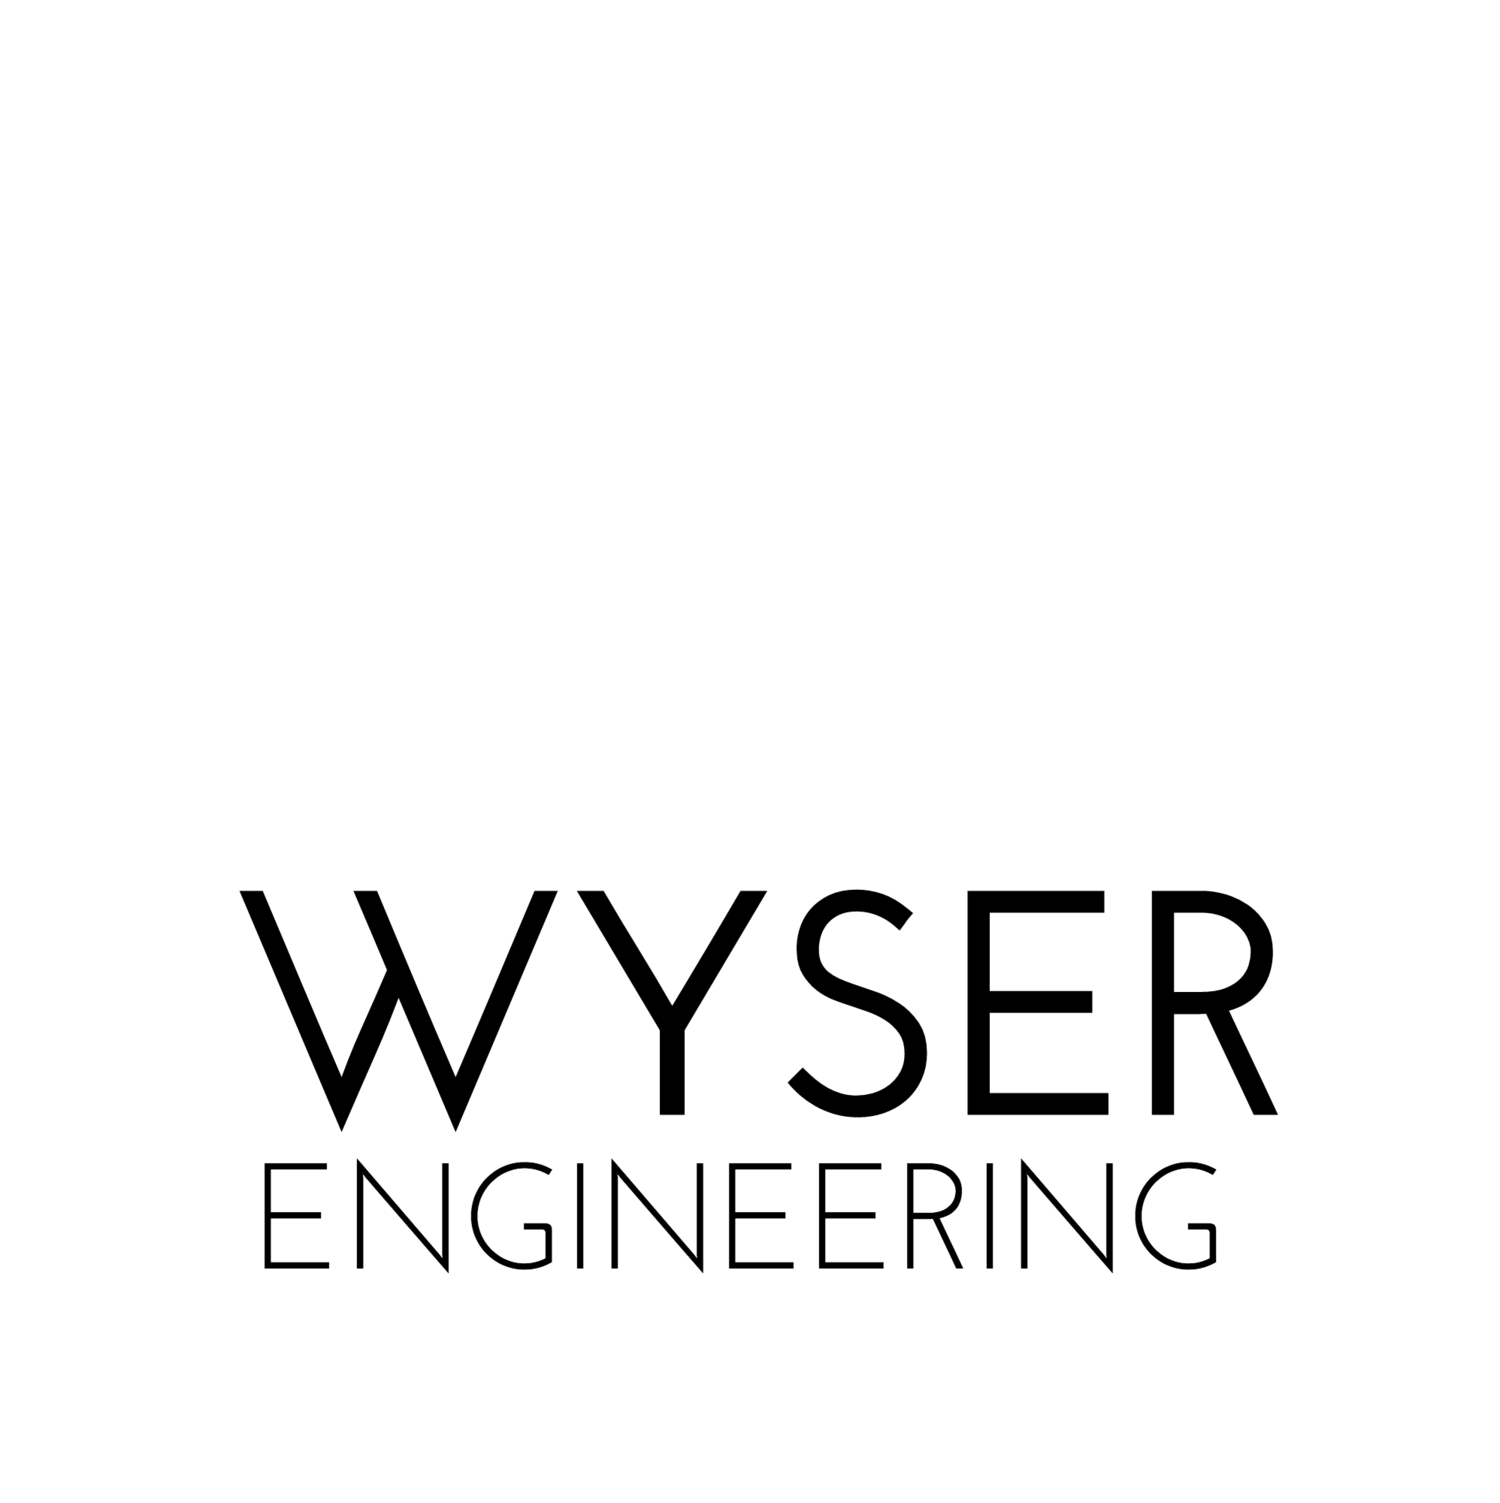 WYSER ENGINEERING